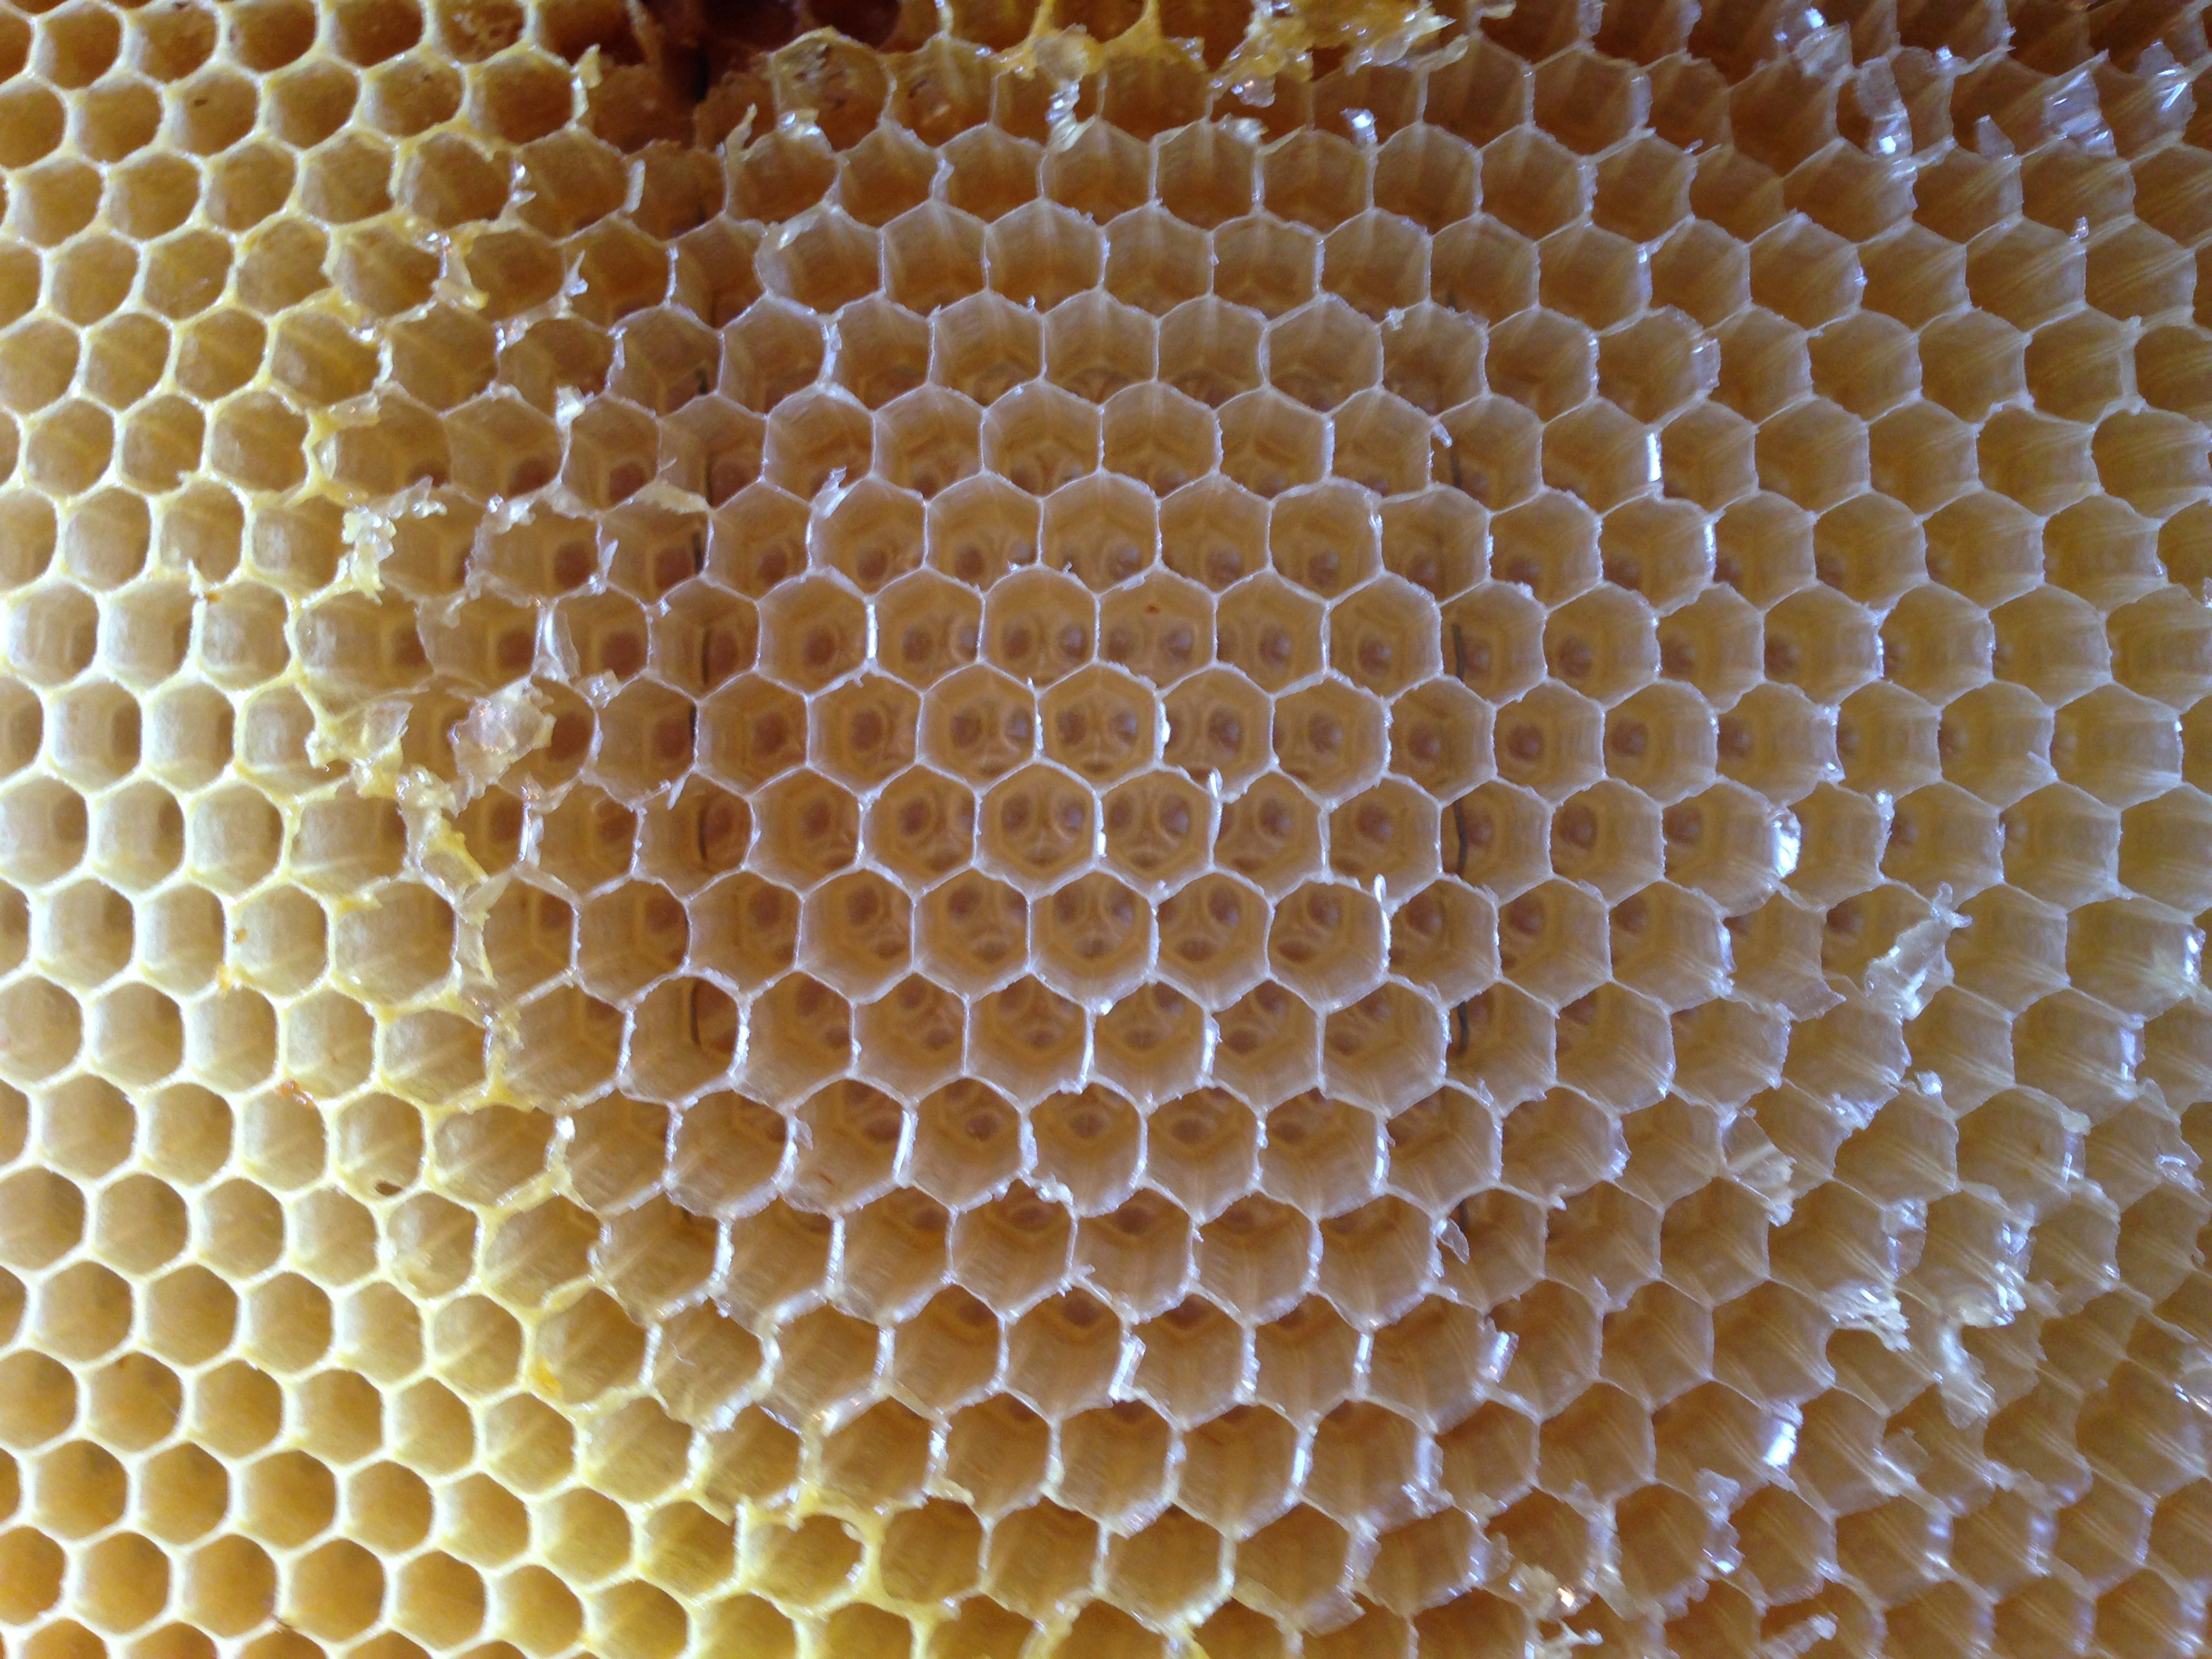 Smiling faces in the honeycomb